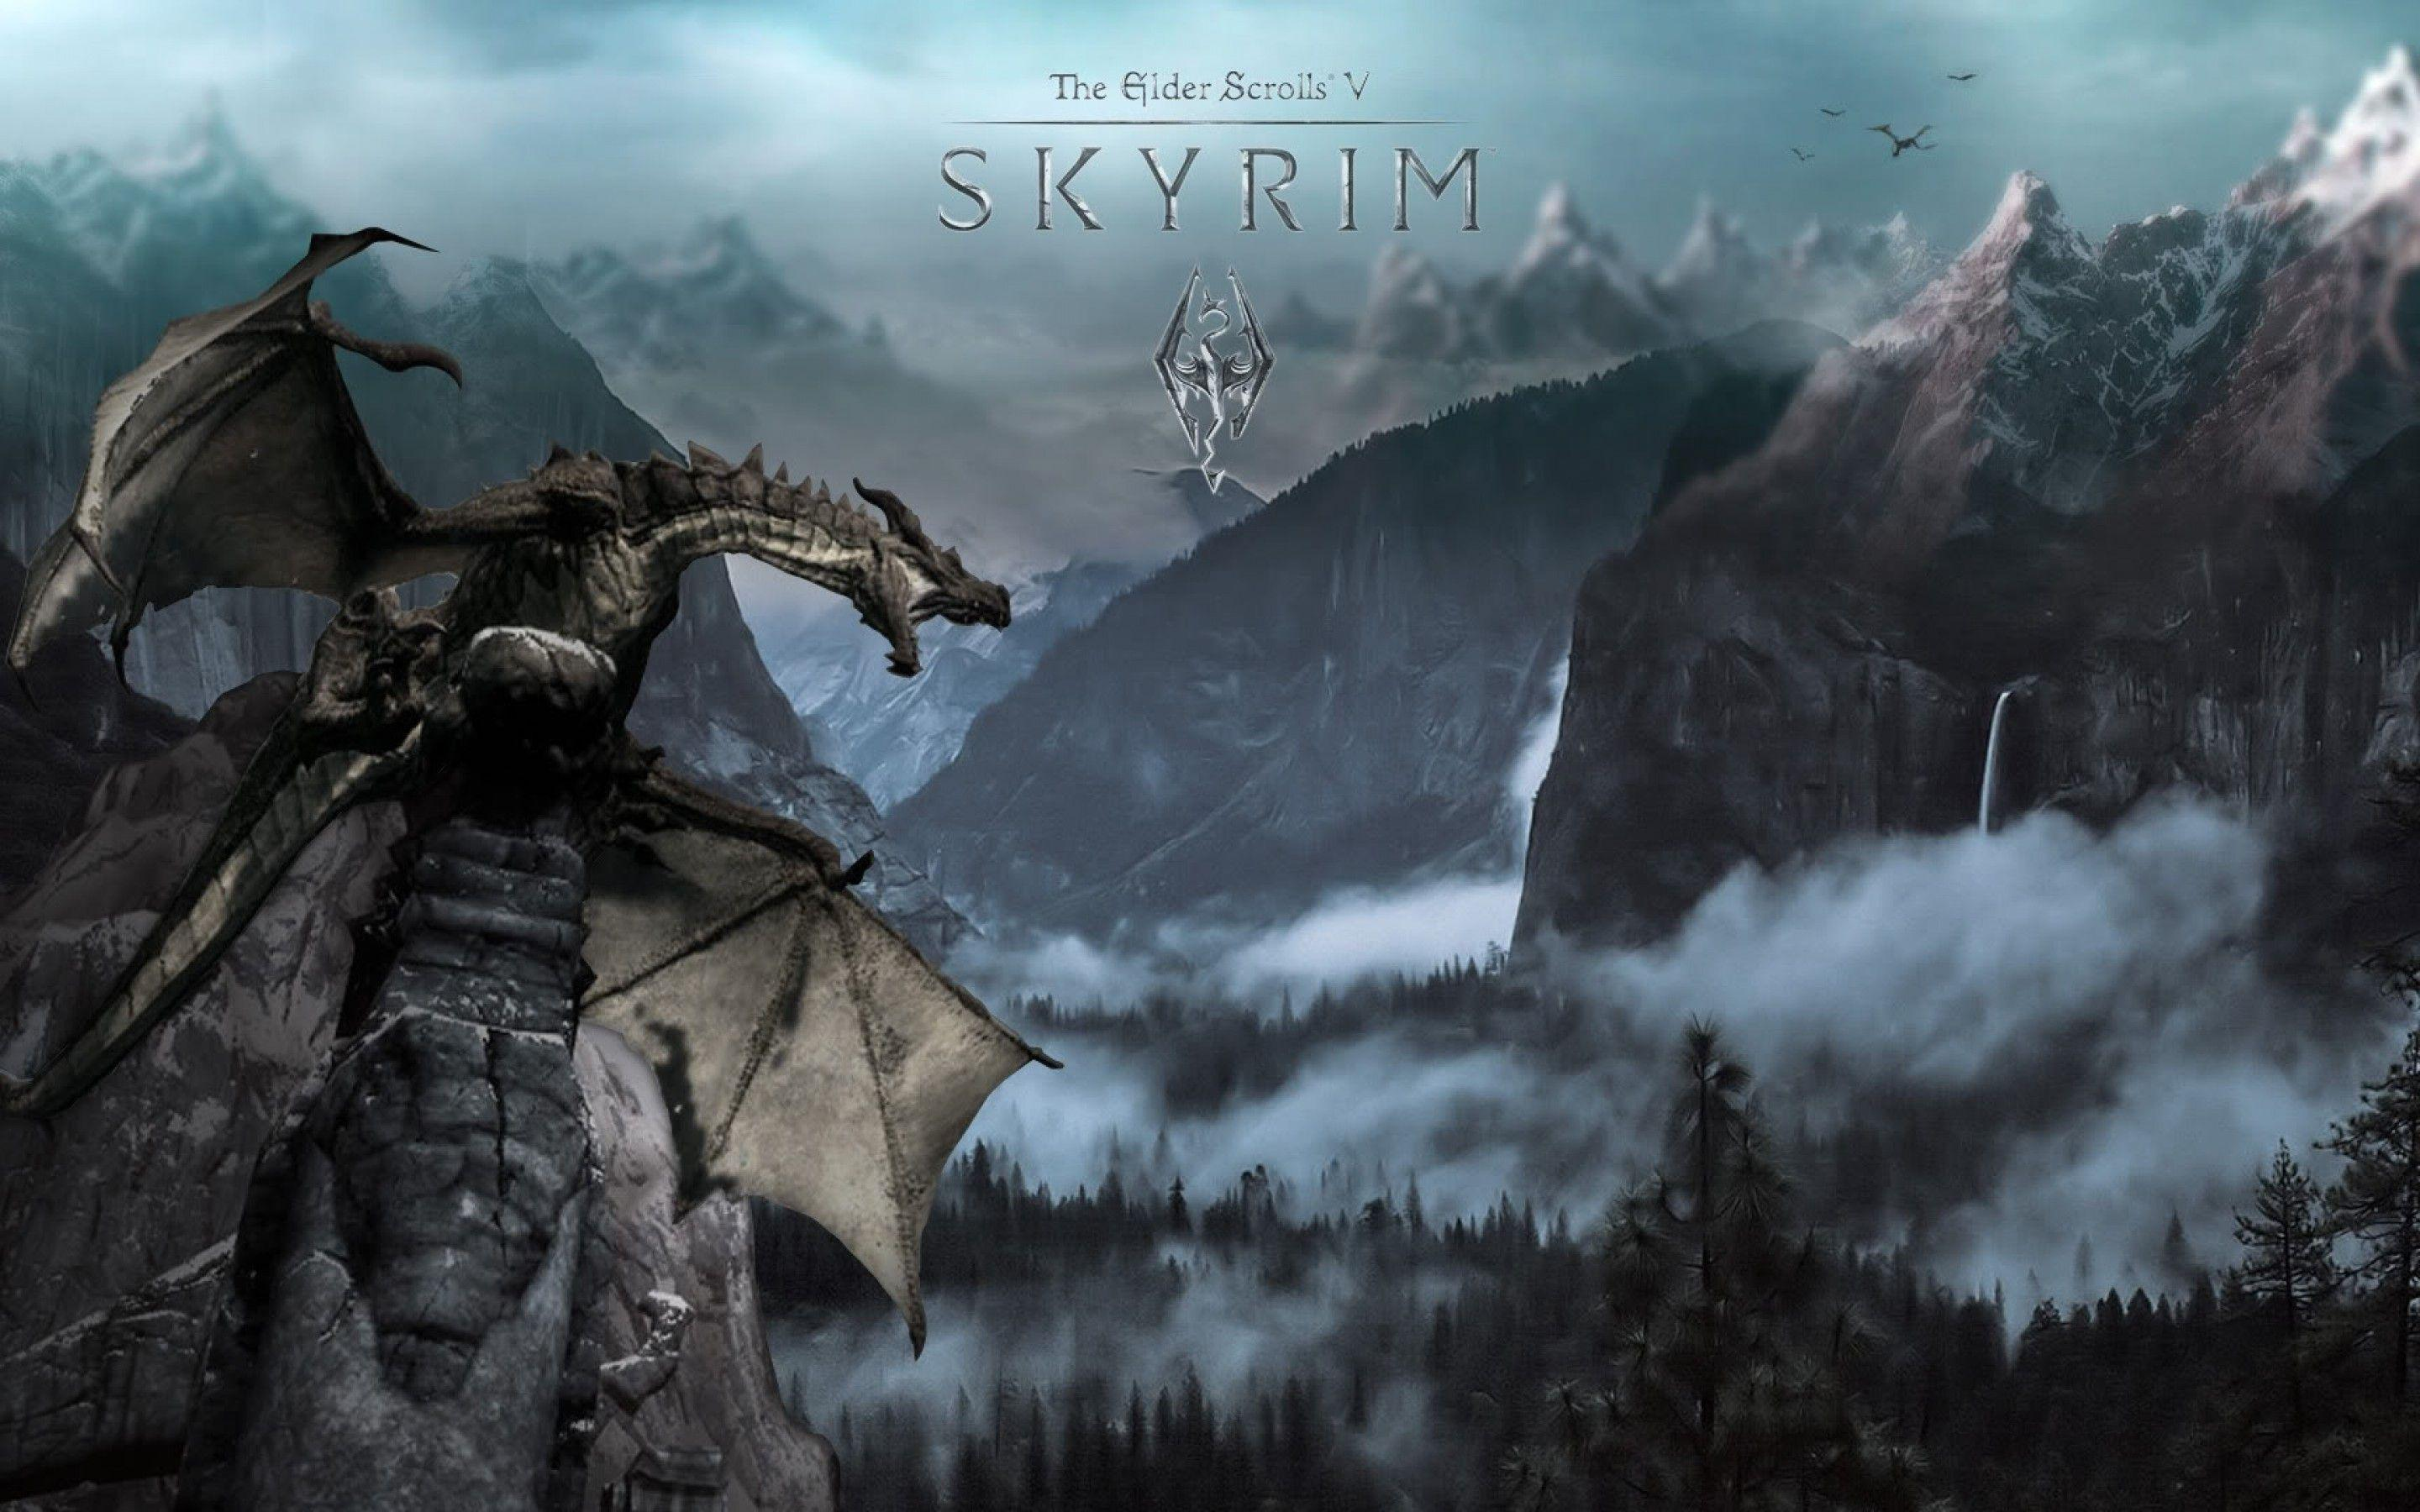 skyrim paint art wallpapers - photo #22